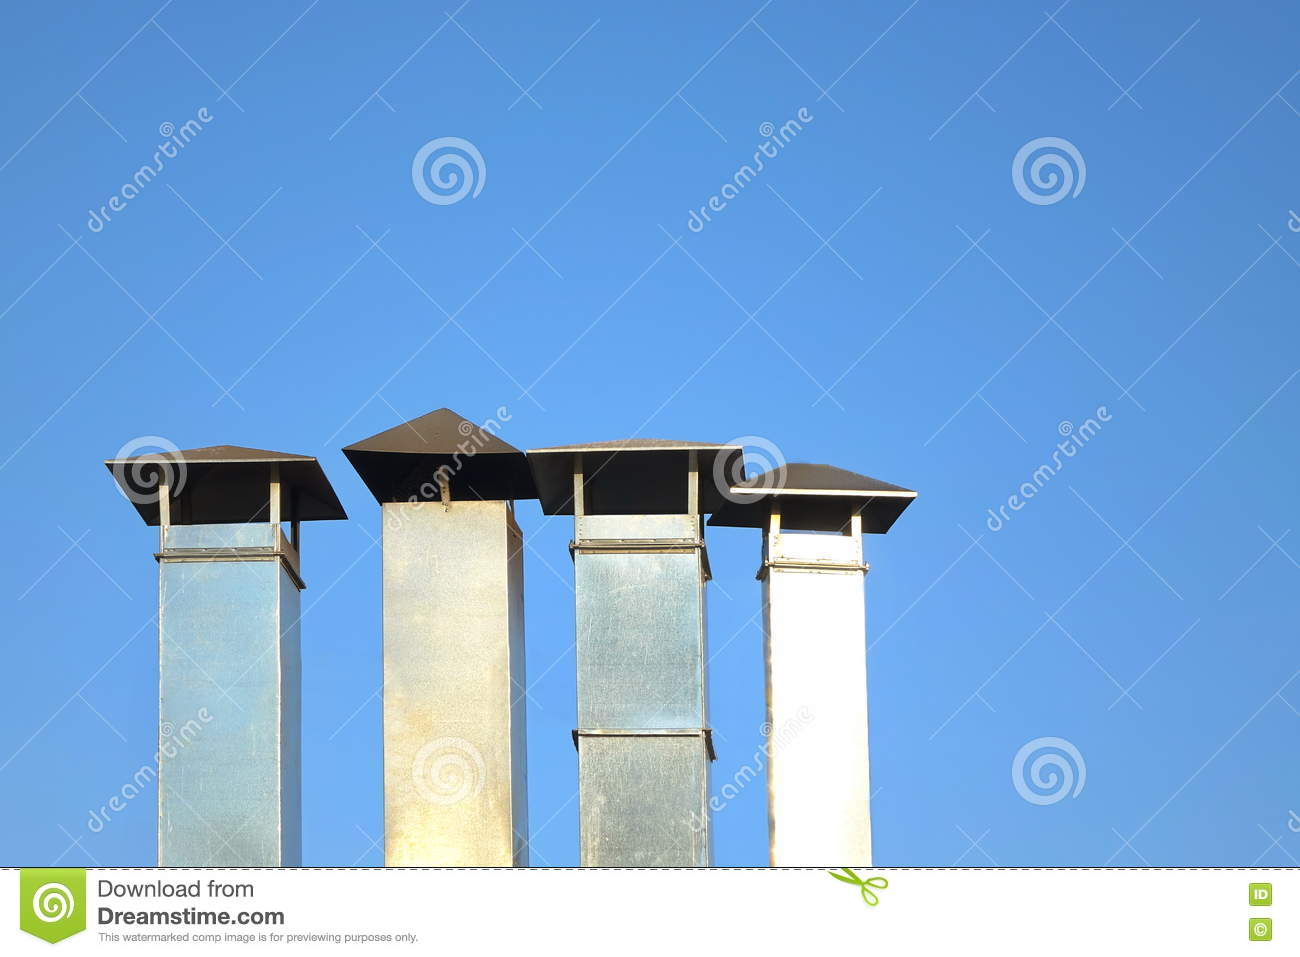 Download Four Galvanized Chimney Pipe Or Vent Pipe In A Row Stock Photo - Image of & Four Galvanized Chimney Pipe Or Vent Pipe In A Row Stock Photo ...